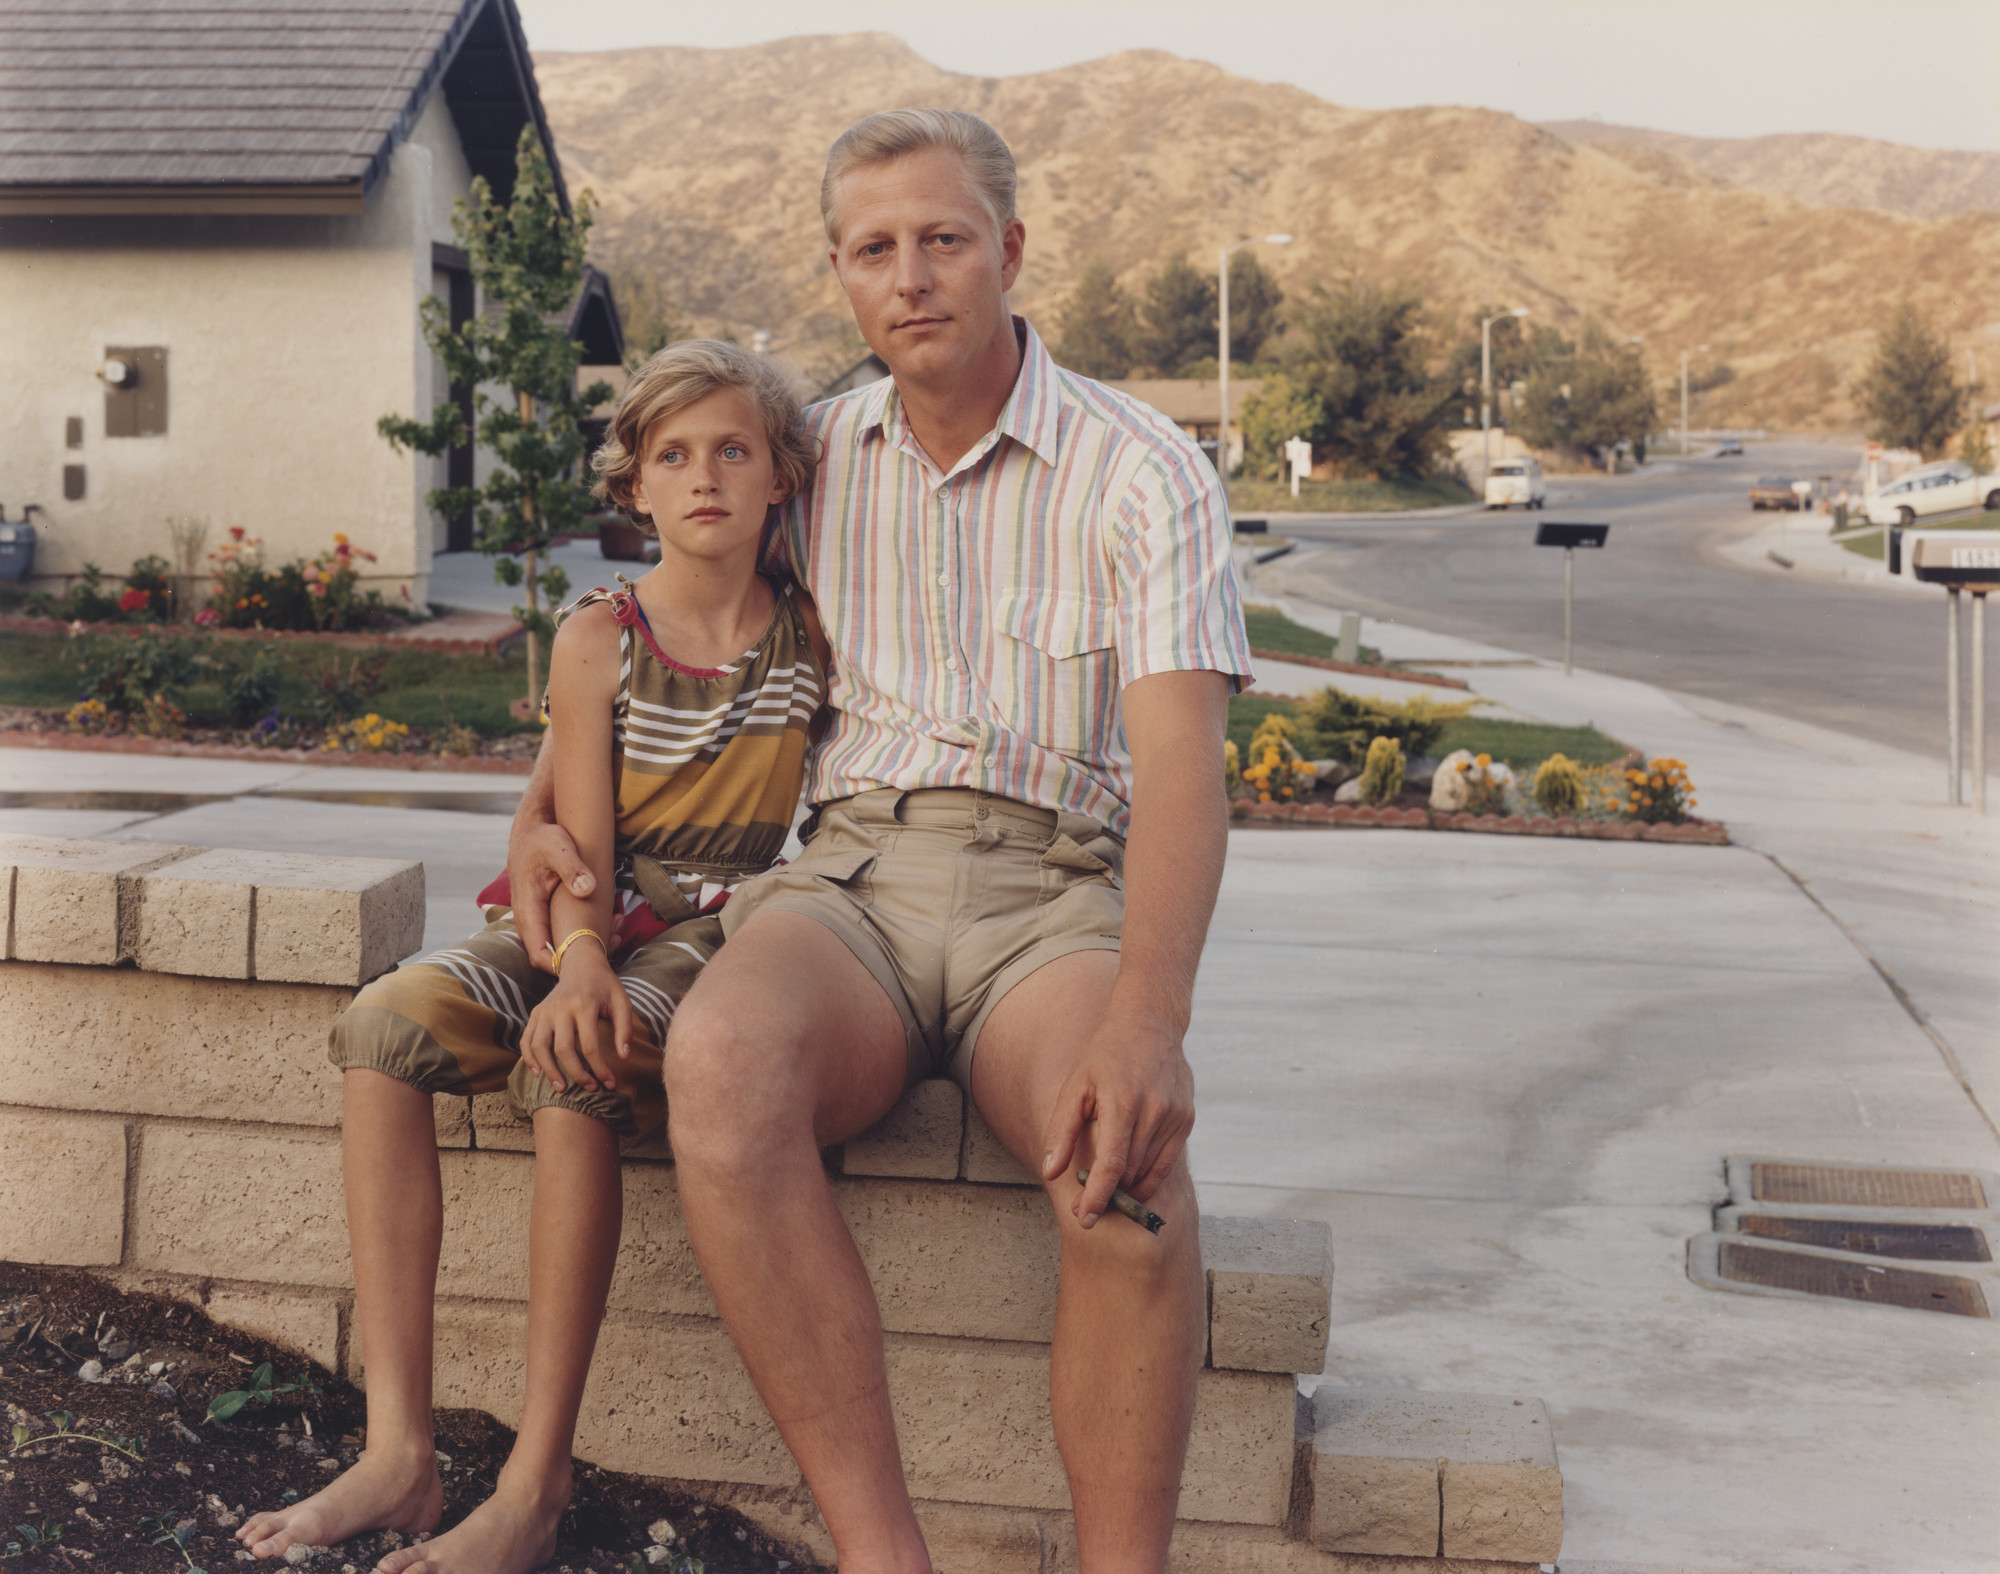 Joel Sternfeld. Canyon Country, California. June 1983